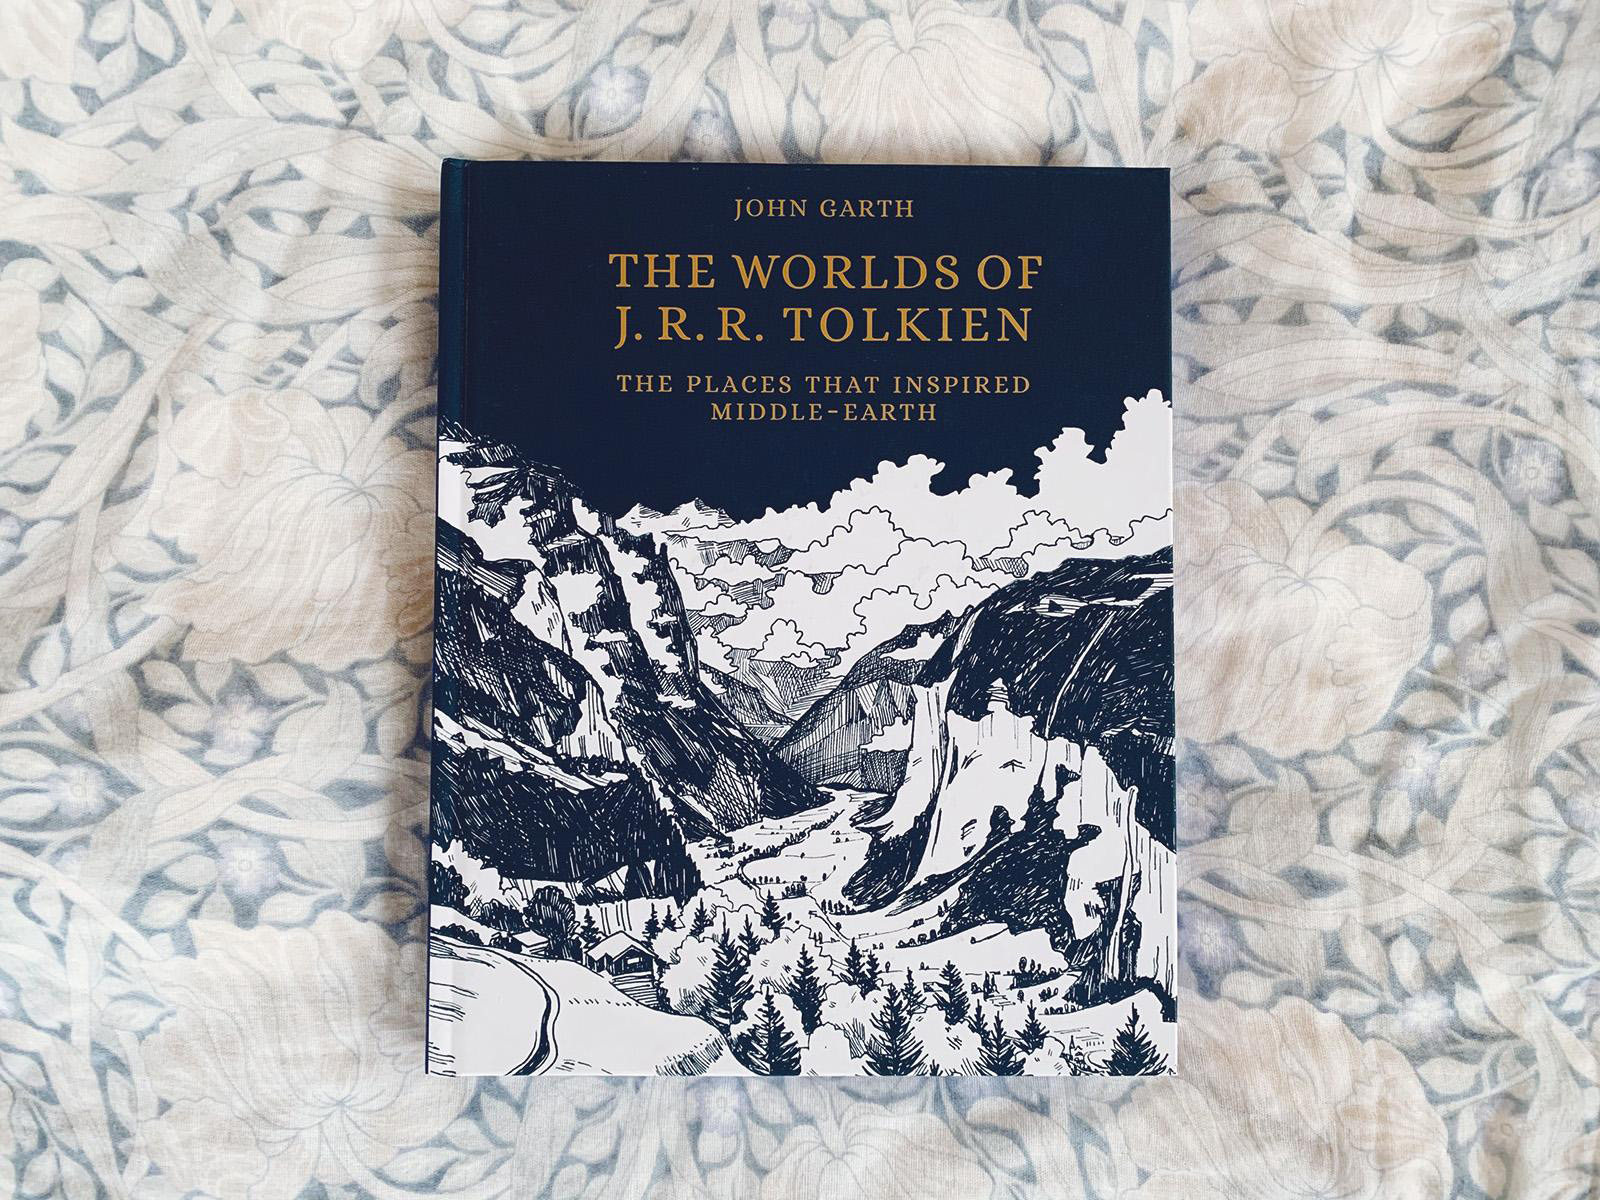 書影写真: The Worlds of J.R.R. Tolkien